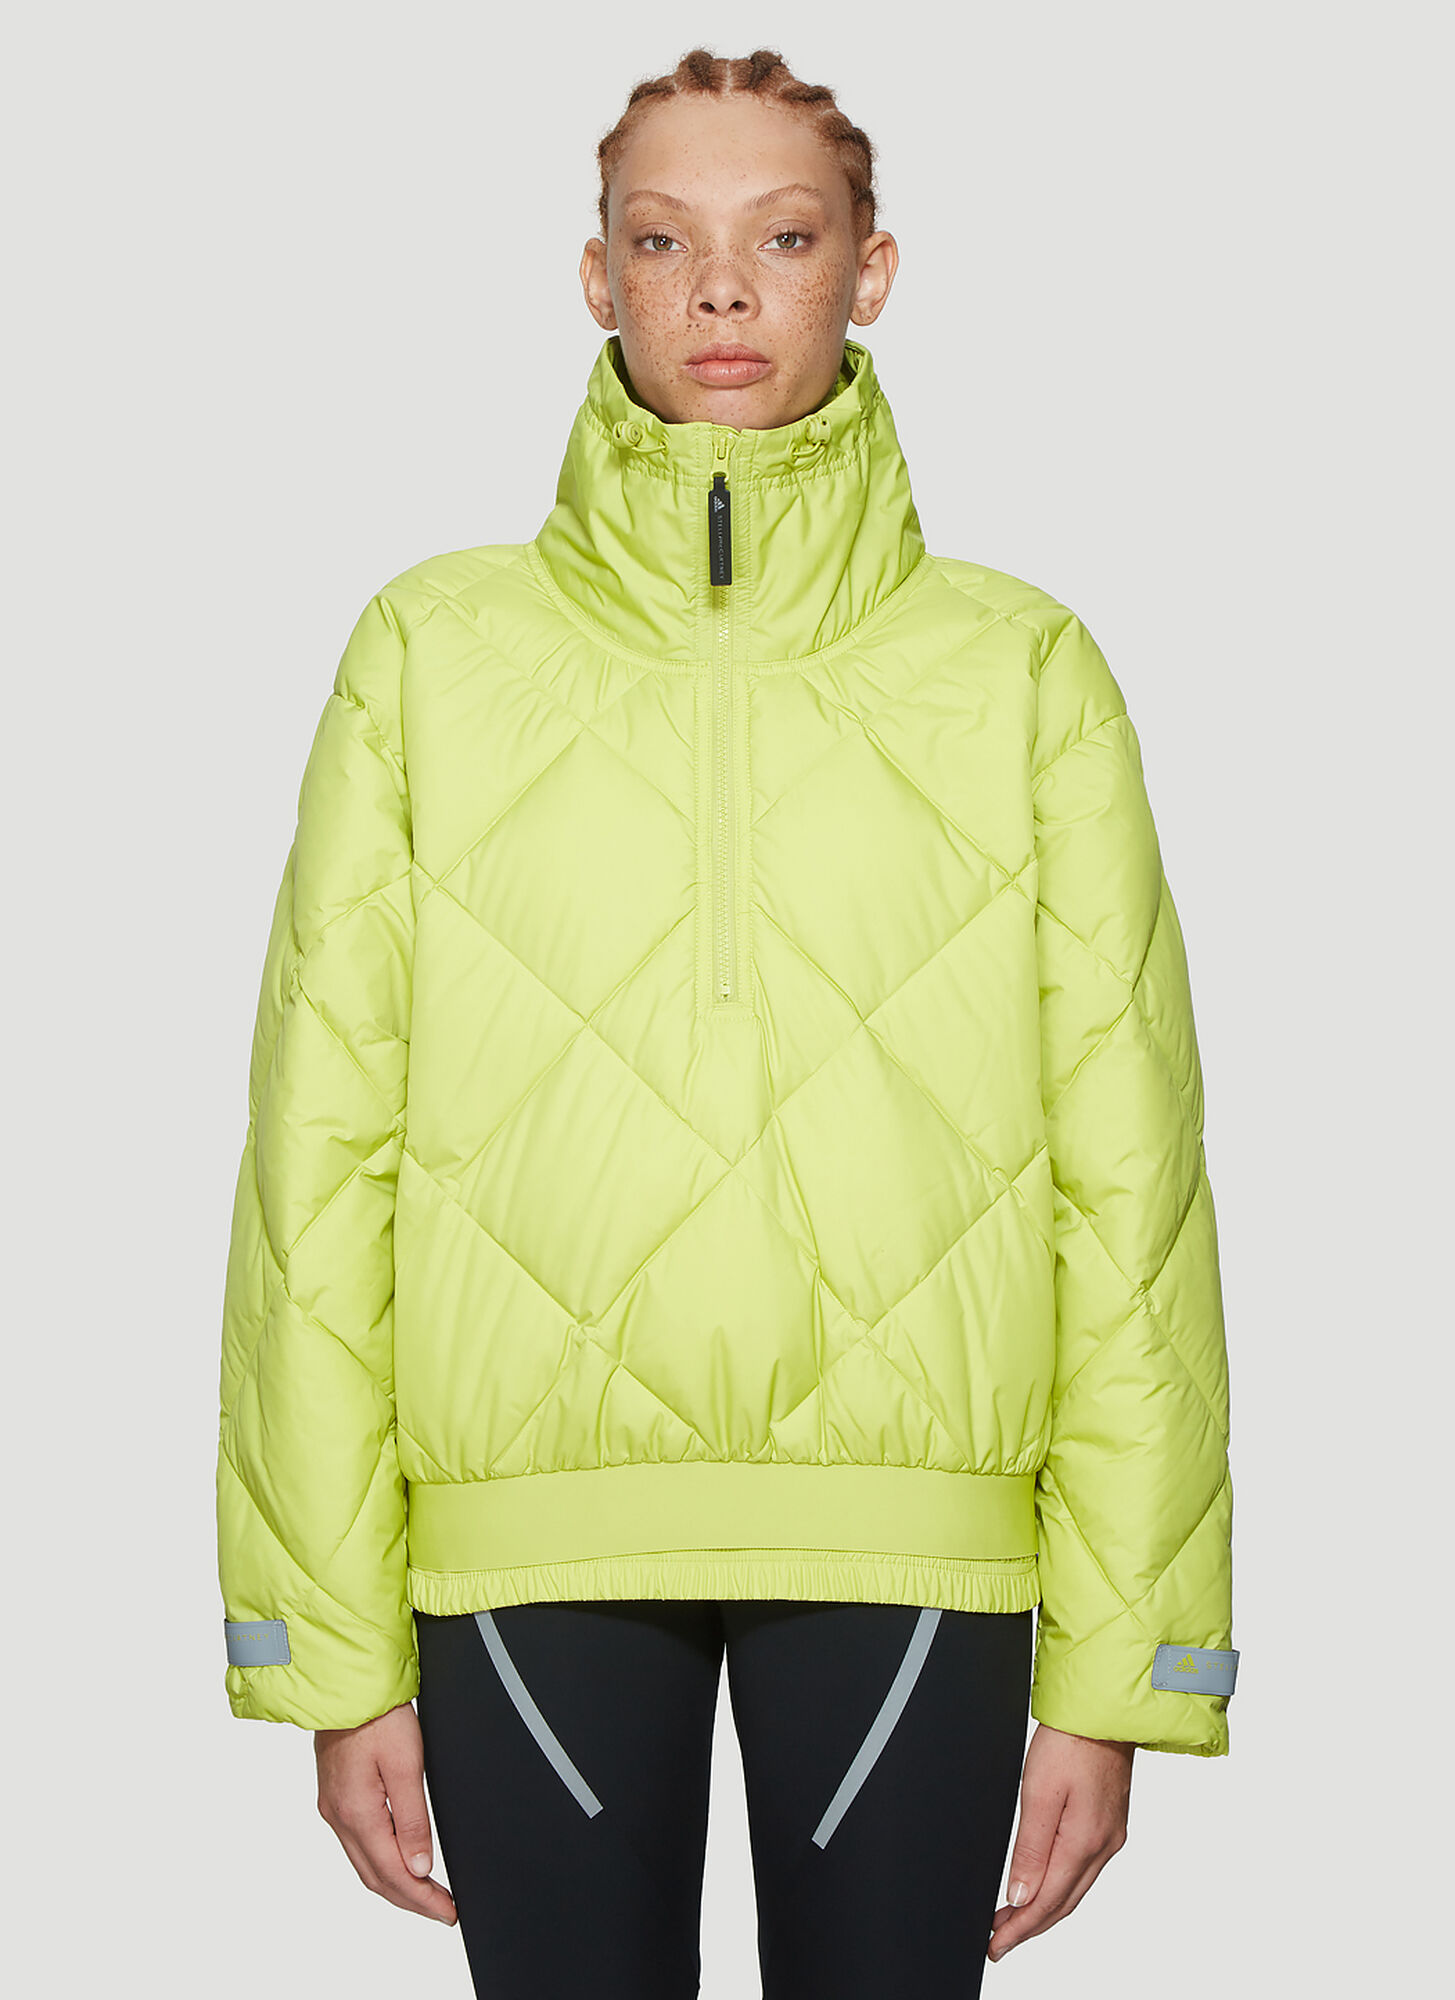 adidas by Stella McCartney Padded Pullover Jacket in Green